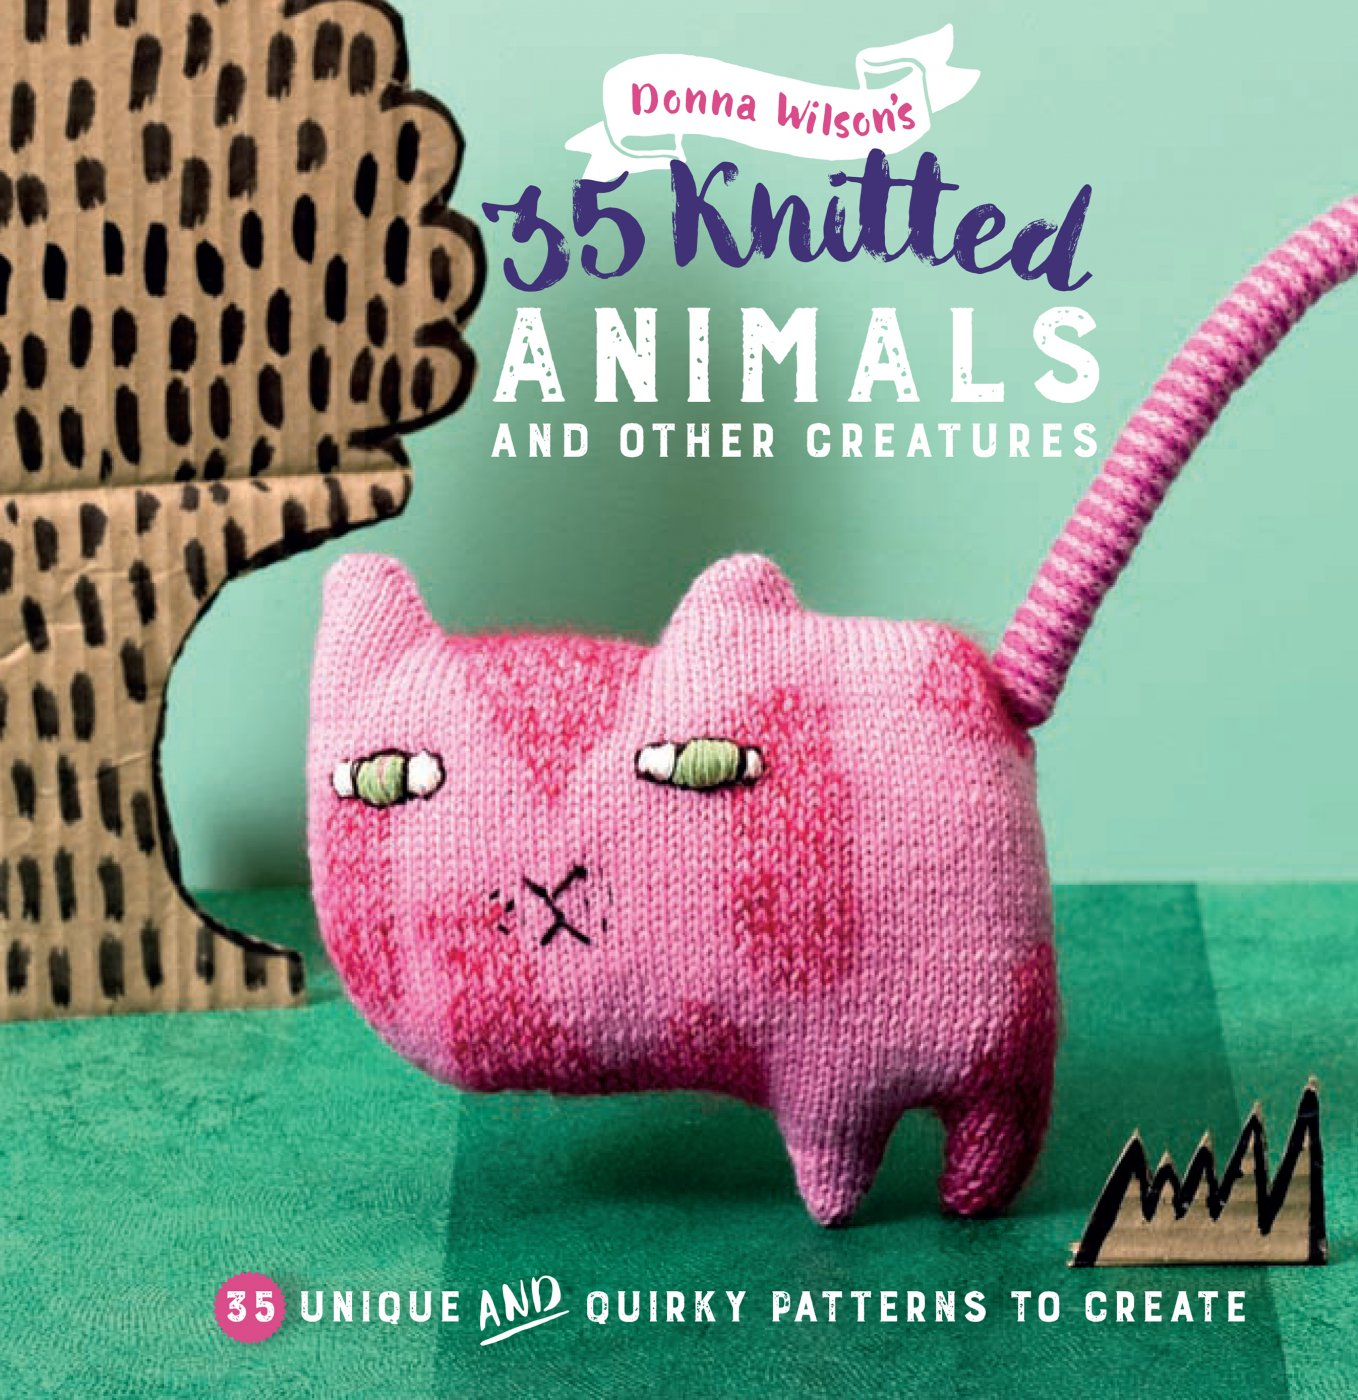 The Knitted Odd Bod Bunch Book - Donna Wilson